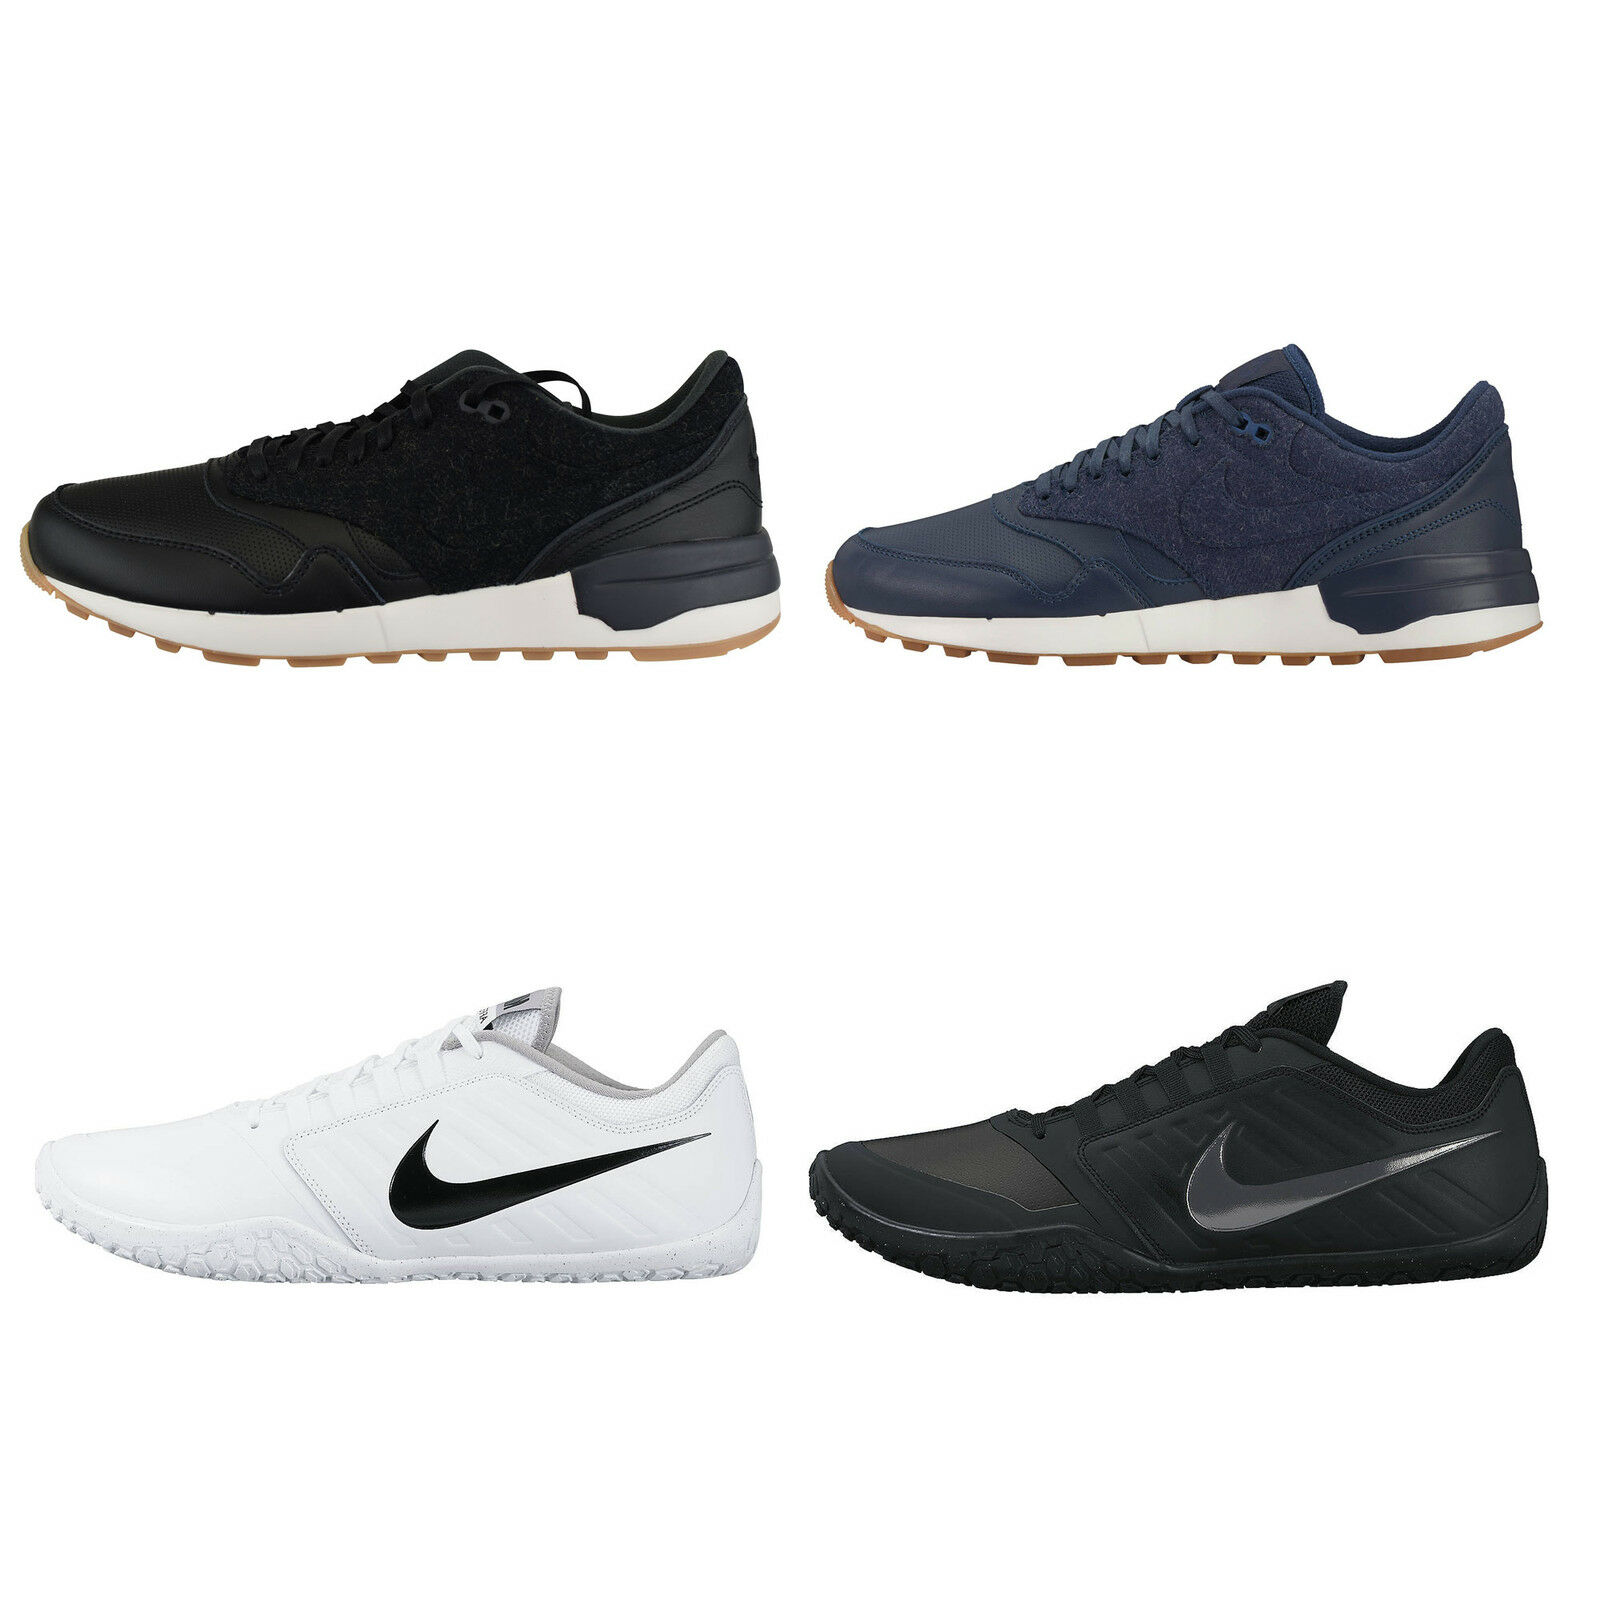 competitive price fa265 c6c06 NIKE NIKE NIKE AIR ODYSSEY LX Nike Air Pernix Shoes Trainers max running shoes  NEW 172f1a